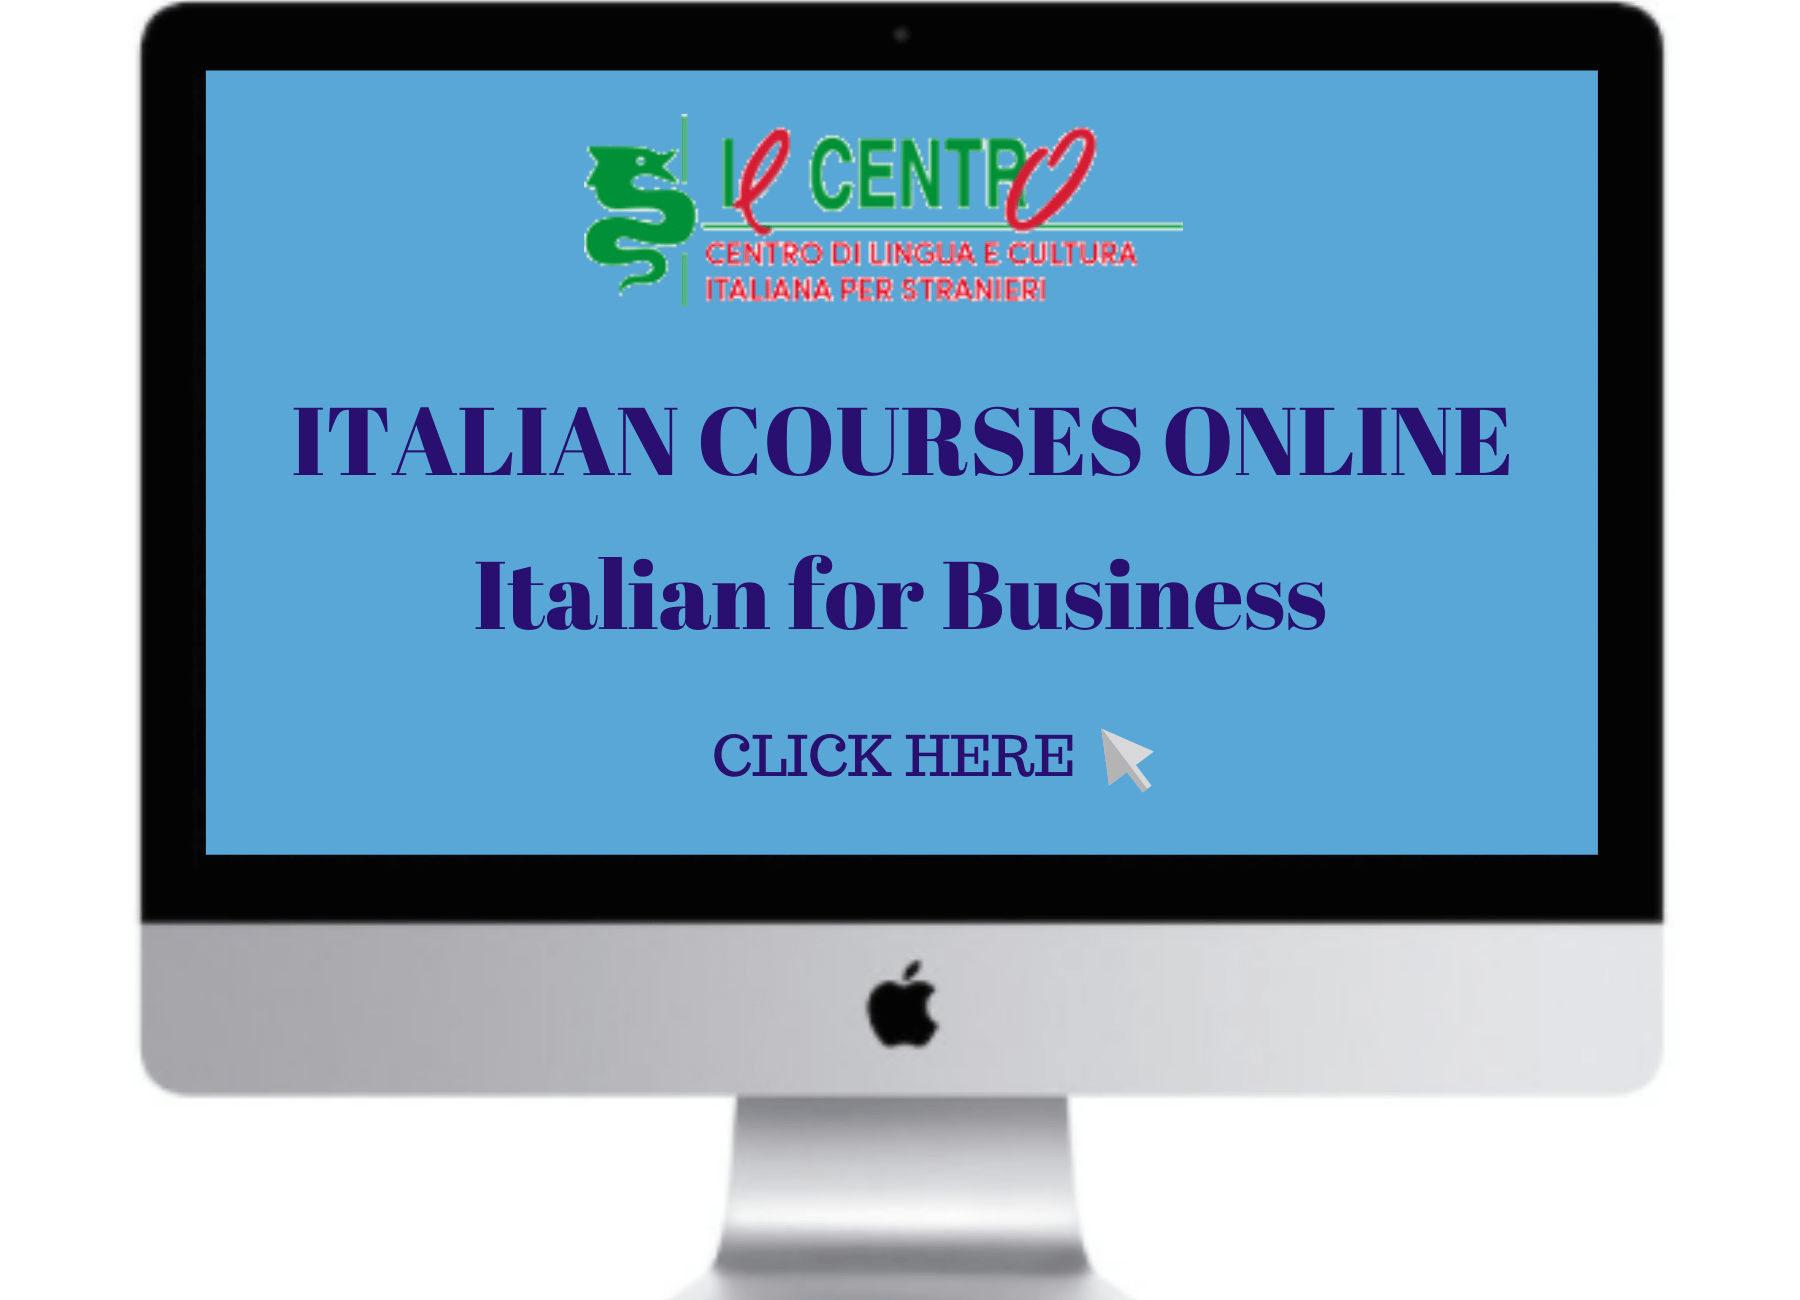 Business Italian courses online for companies